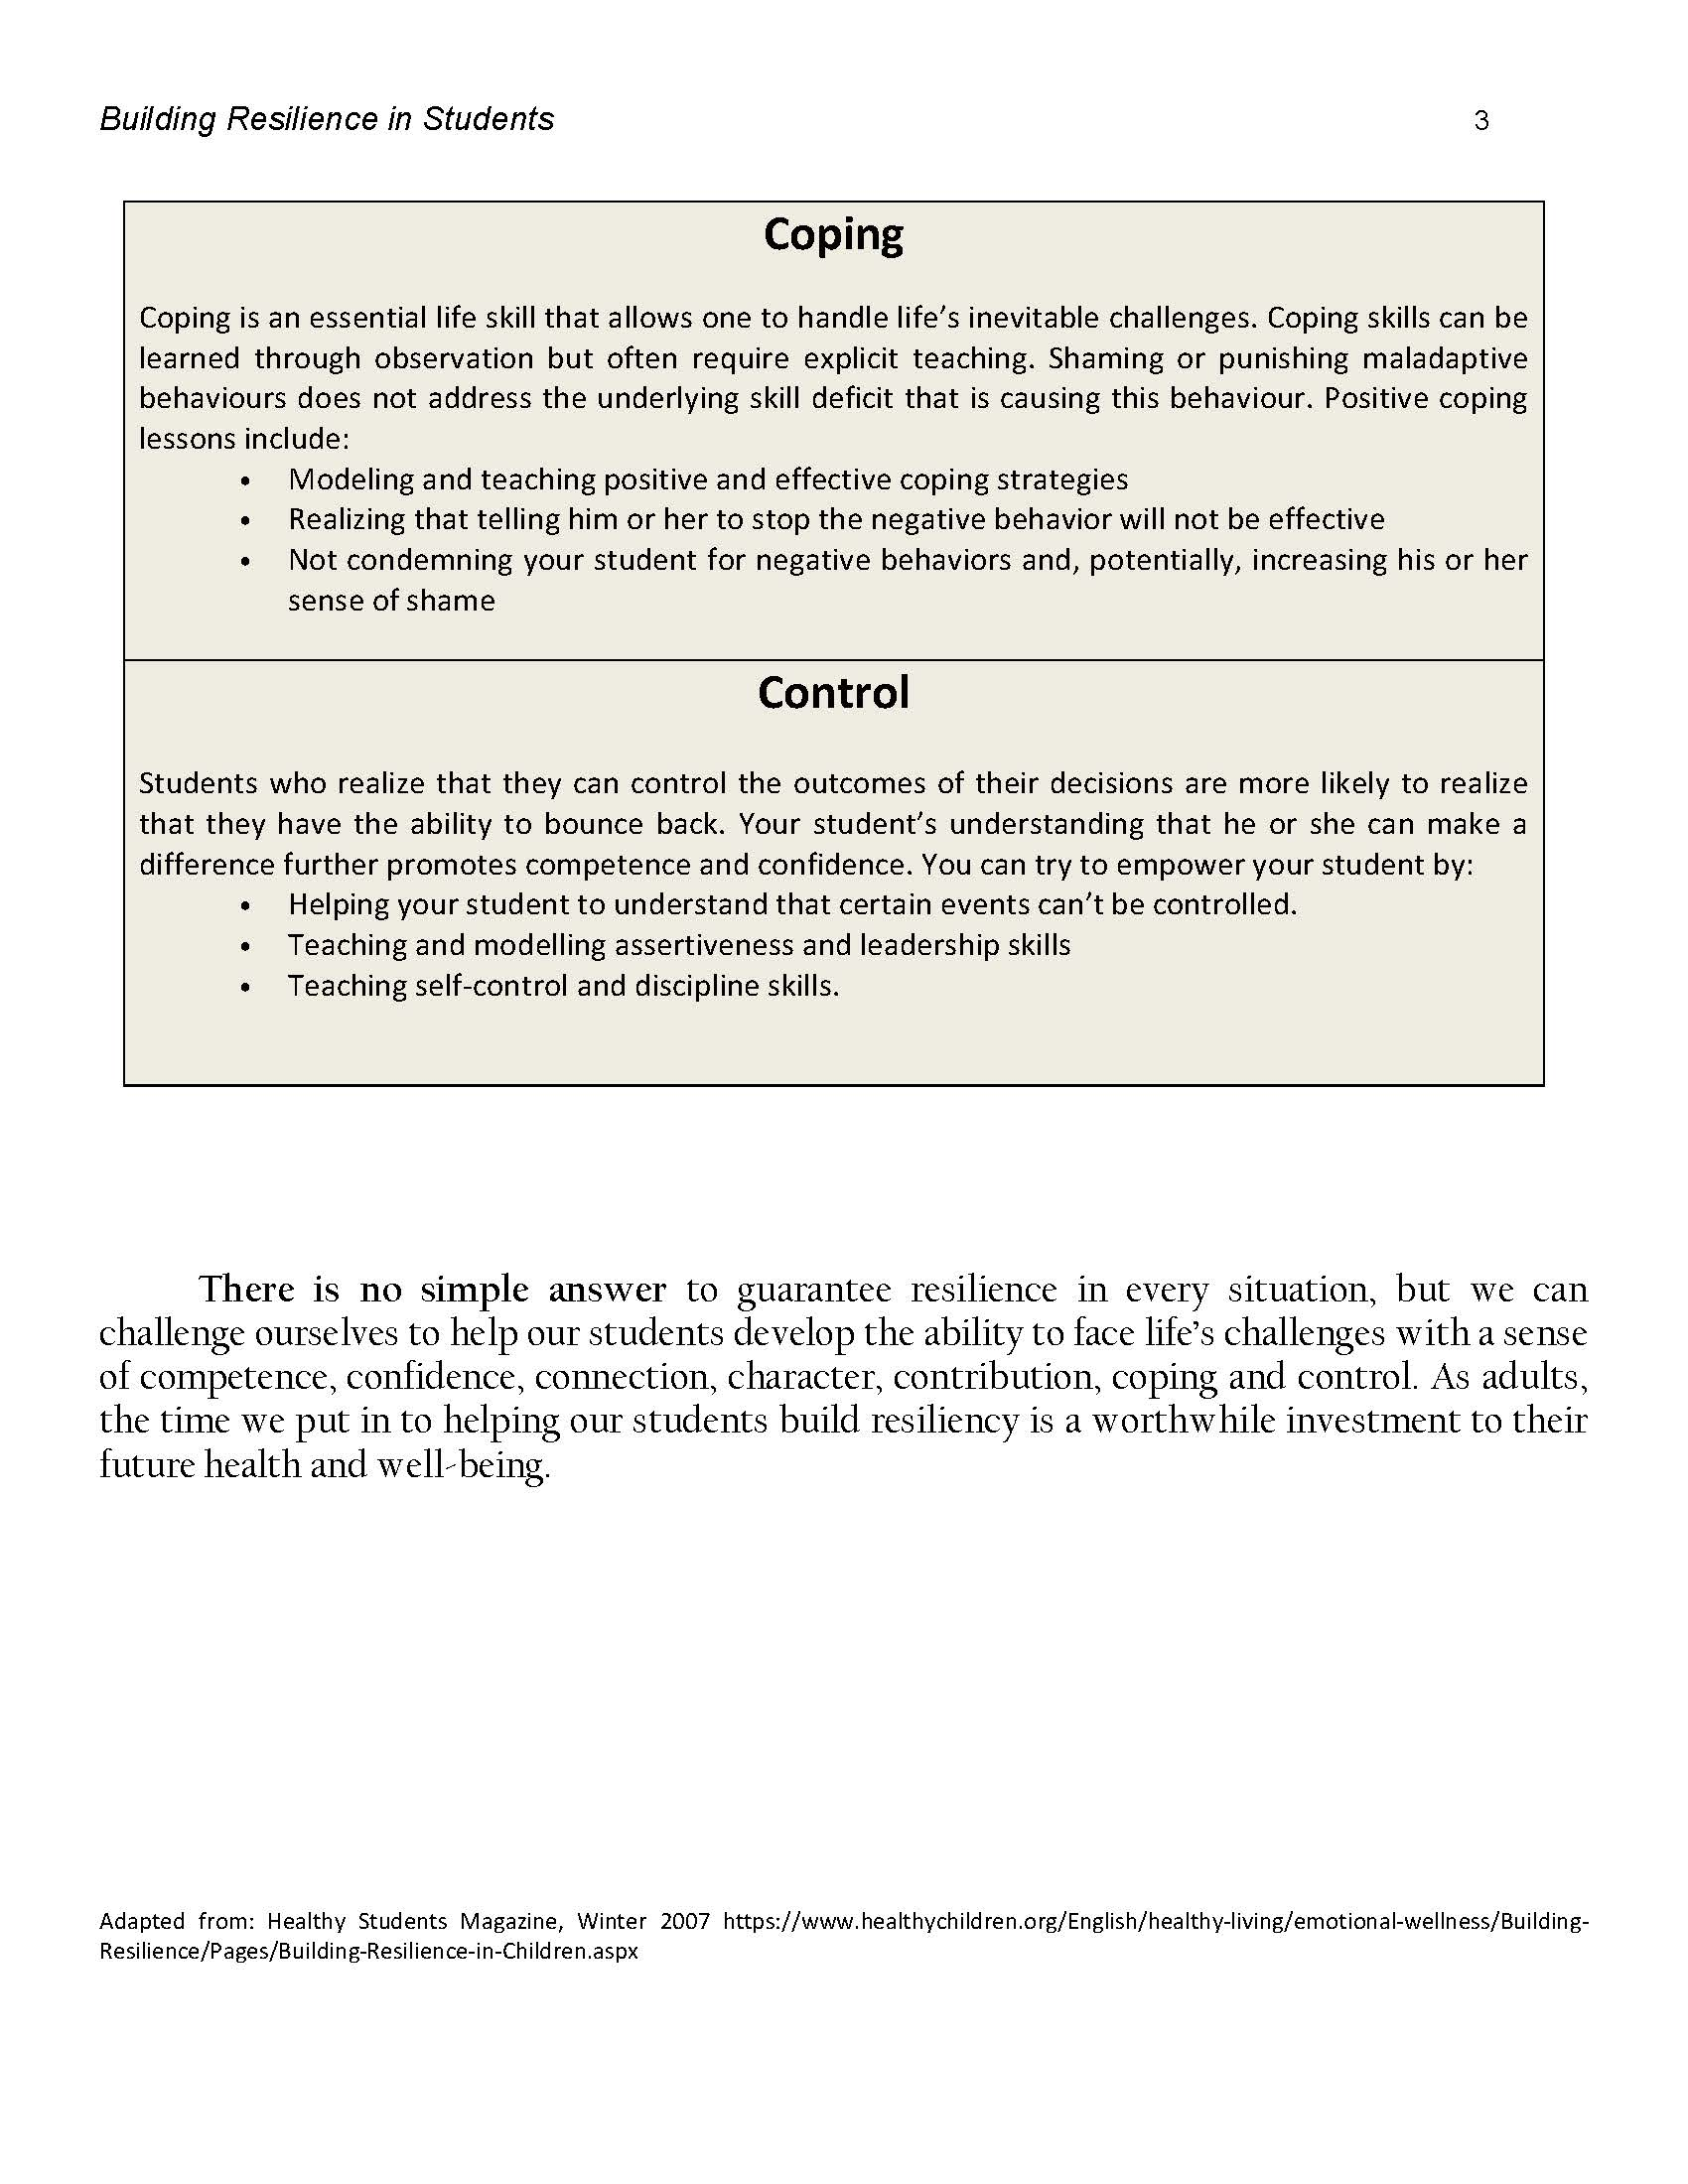 Building Resilience in Students- handout_Page_3.jpg